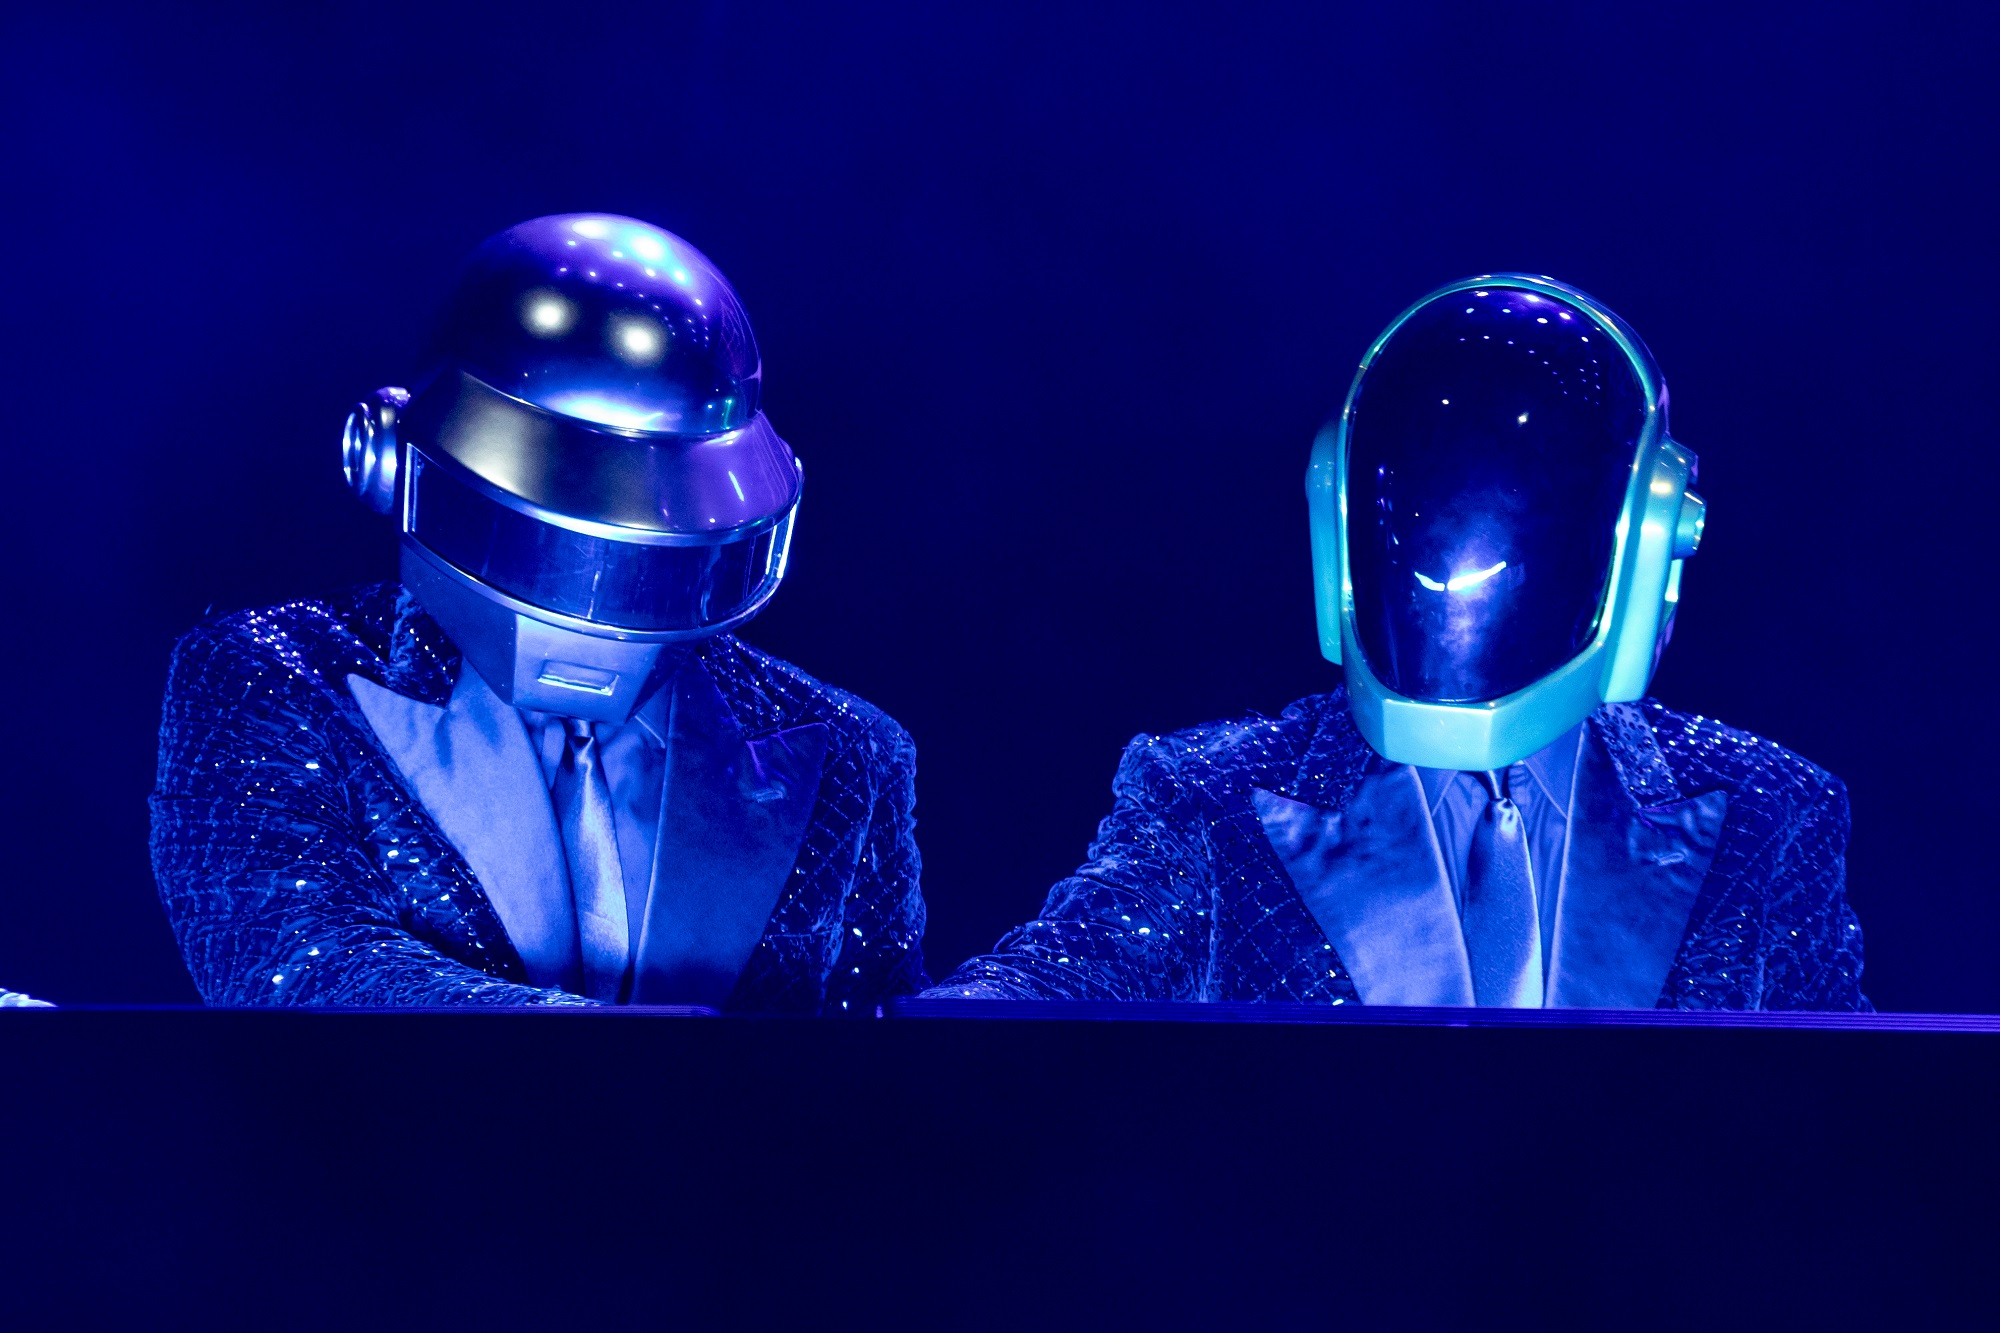 Daft Punk's helmets are an iconic part of their performances